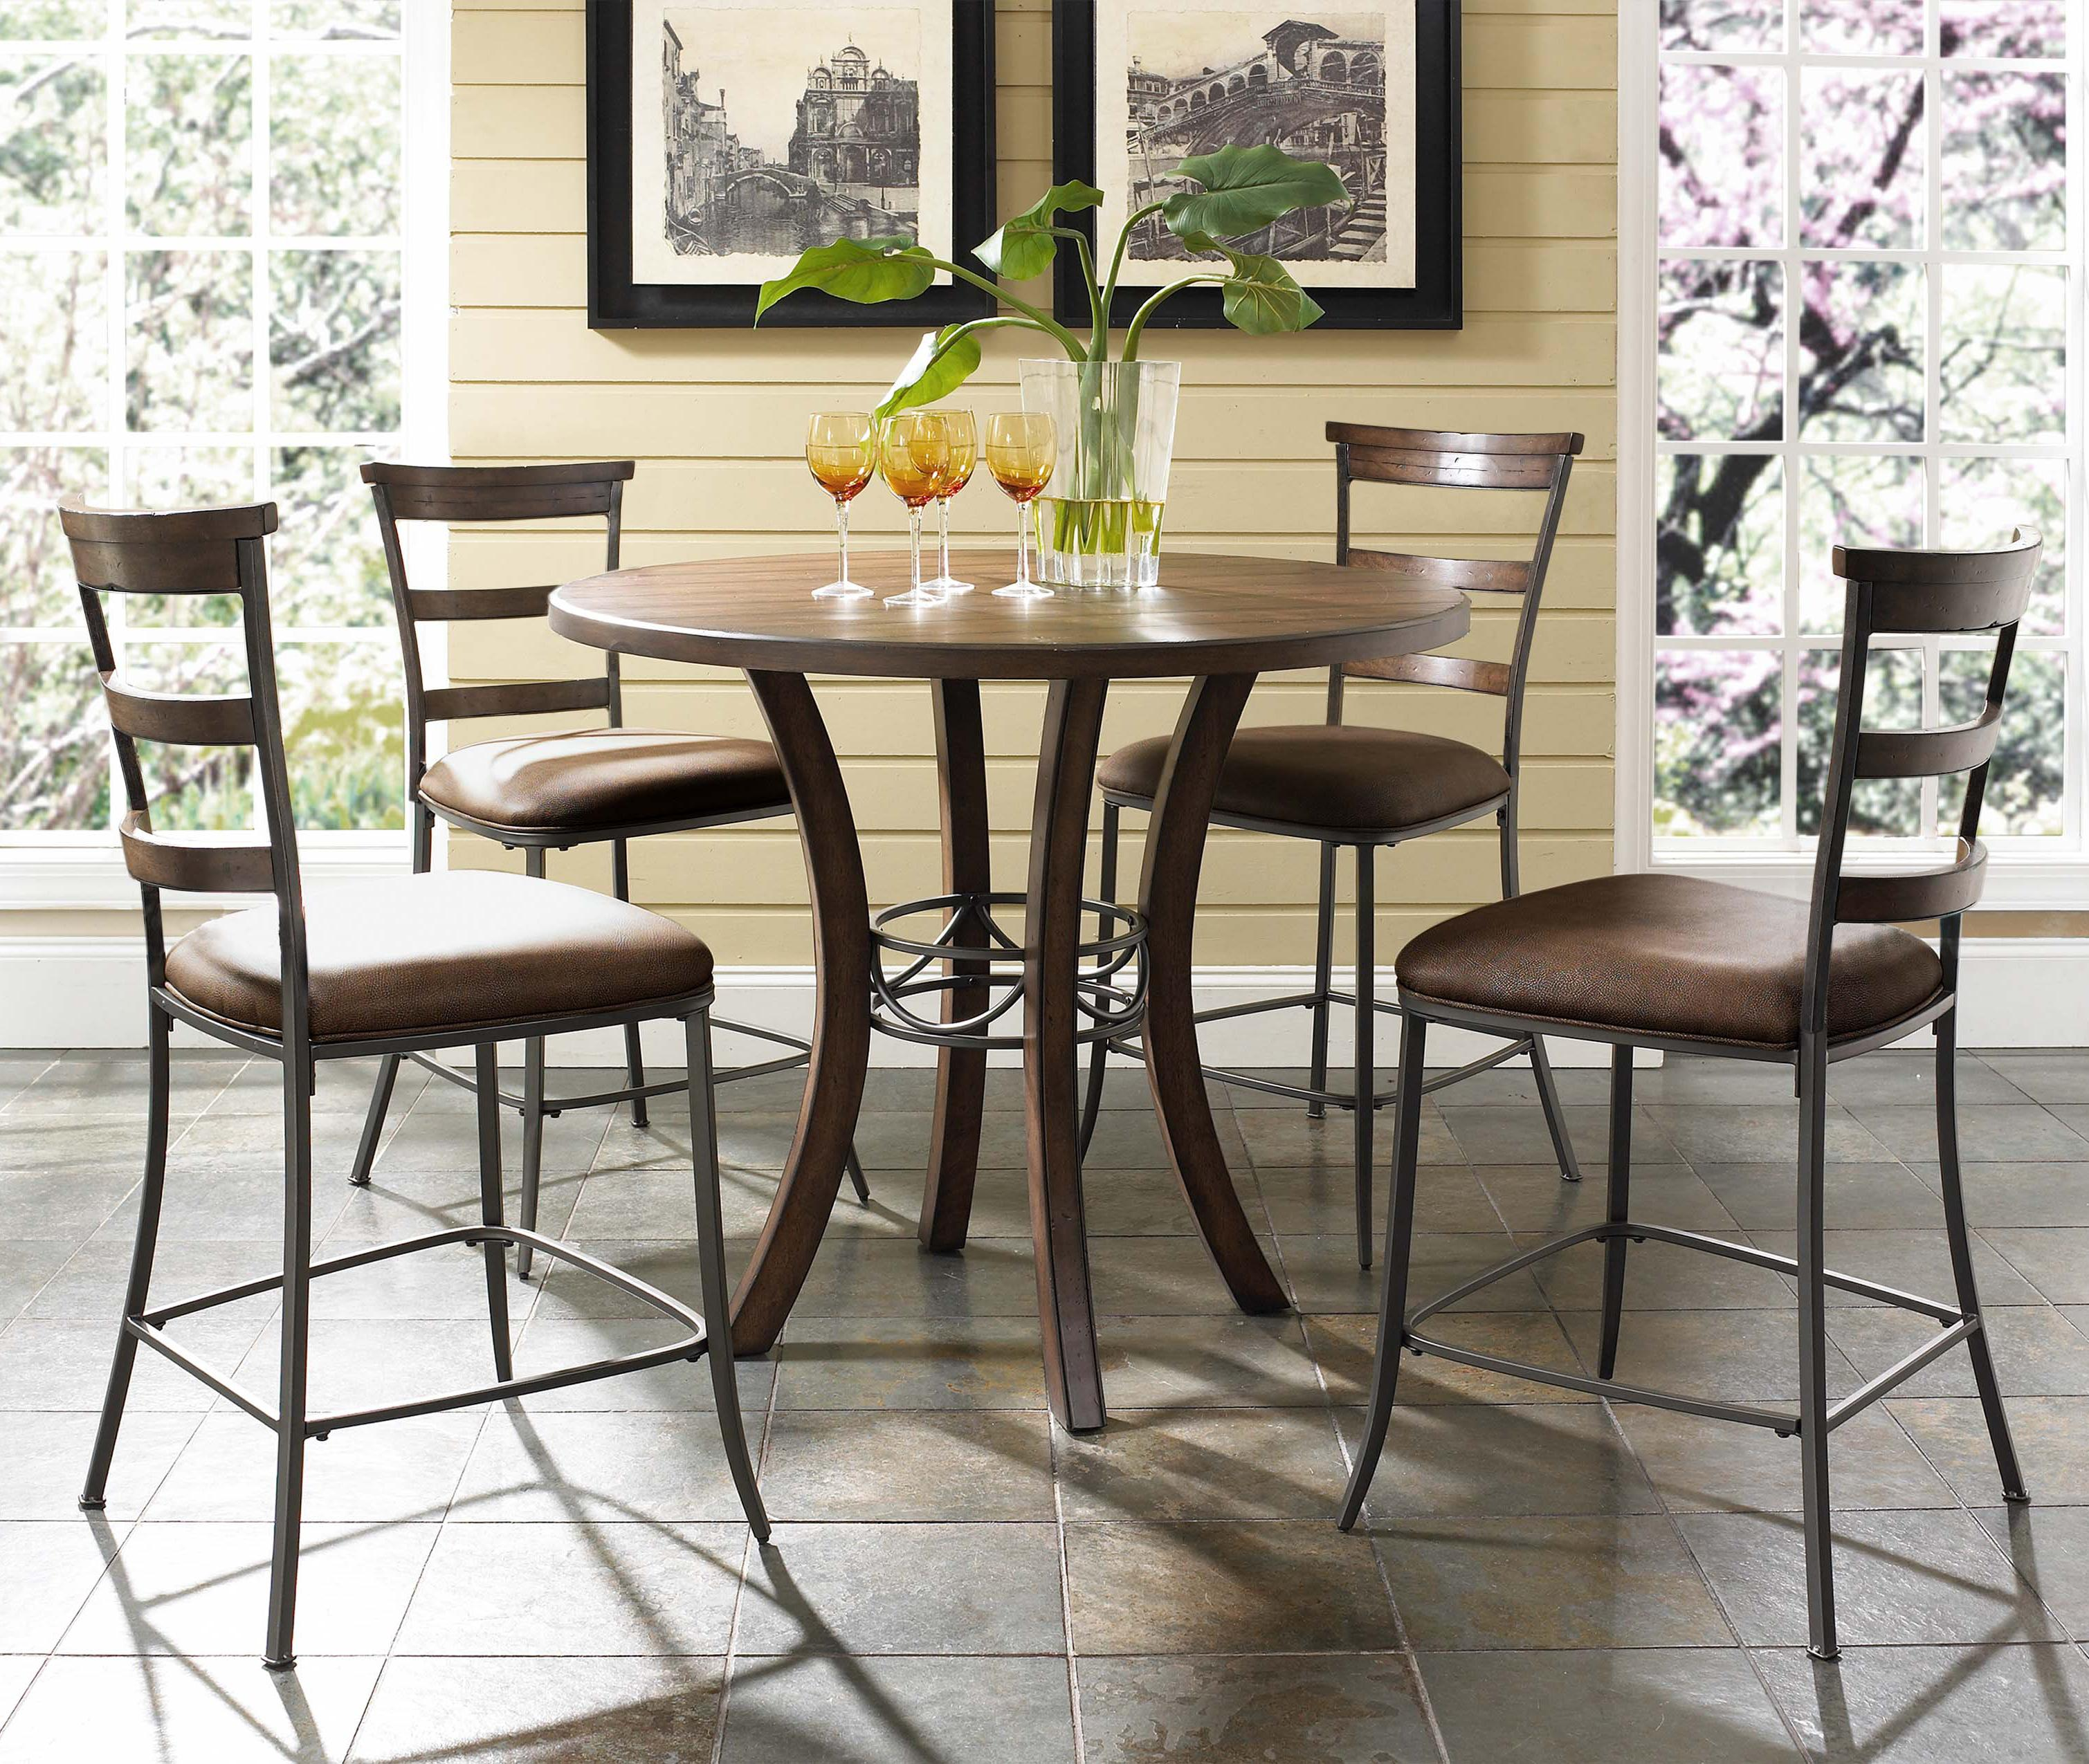 5 Piece Round Counter Height Table & Ladder Back Stools